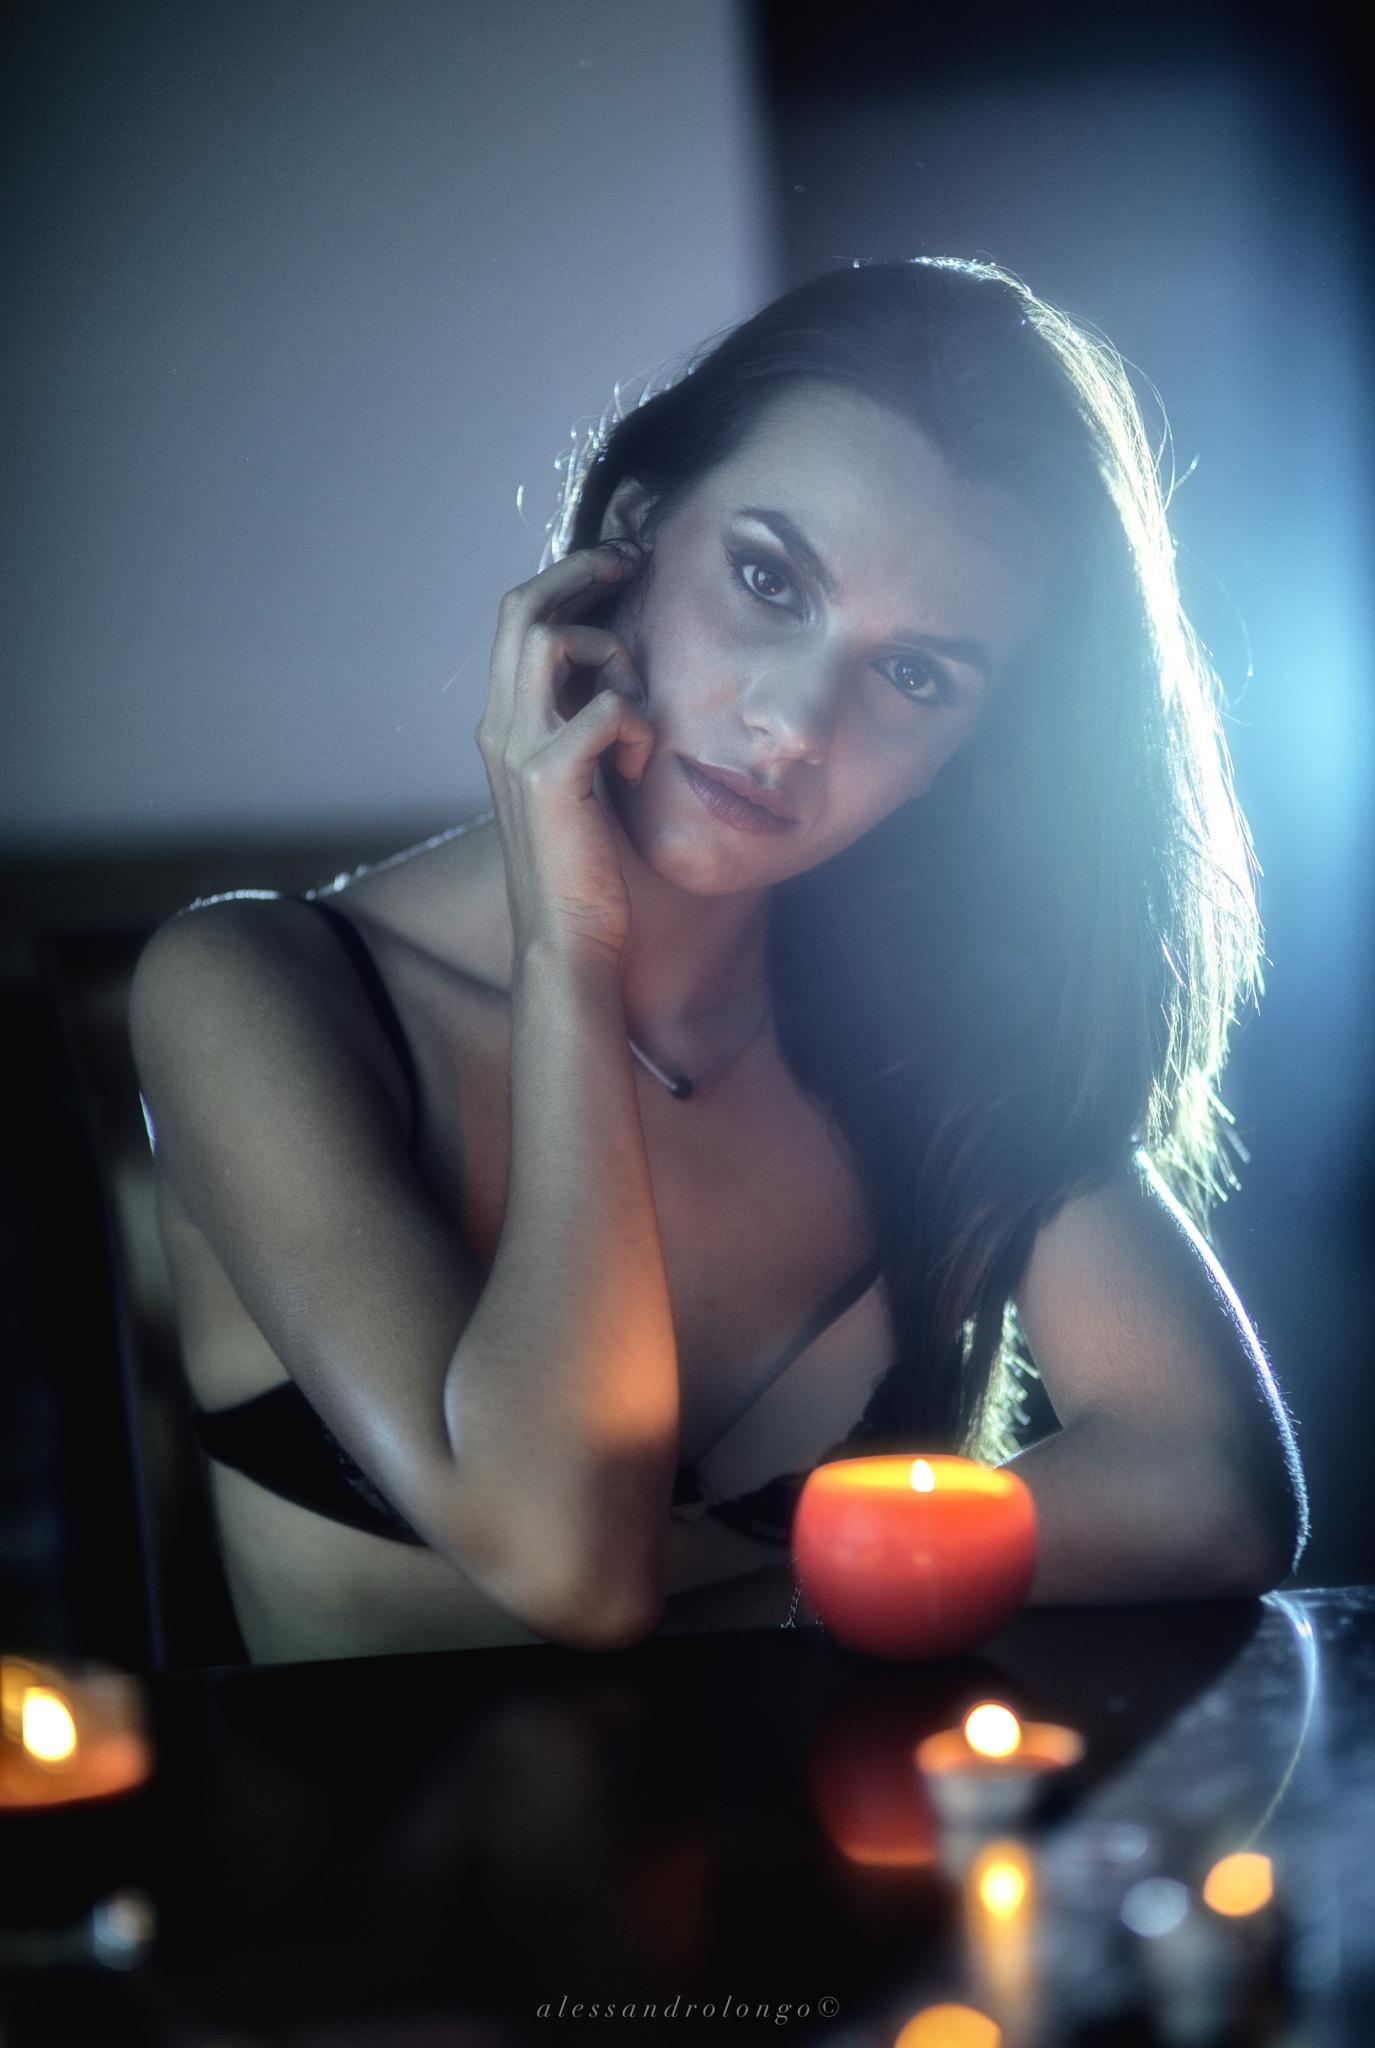 Girl with candle 2 by Alessandro Longo